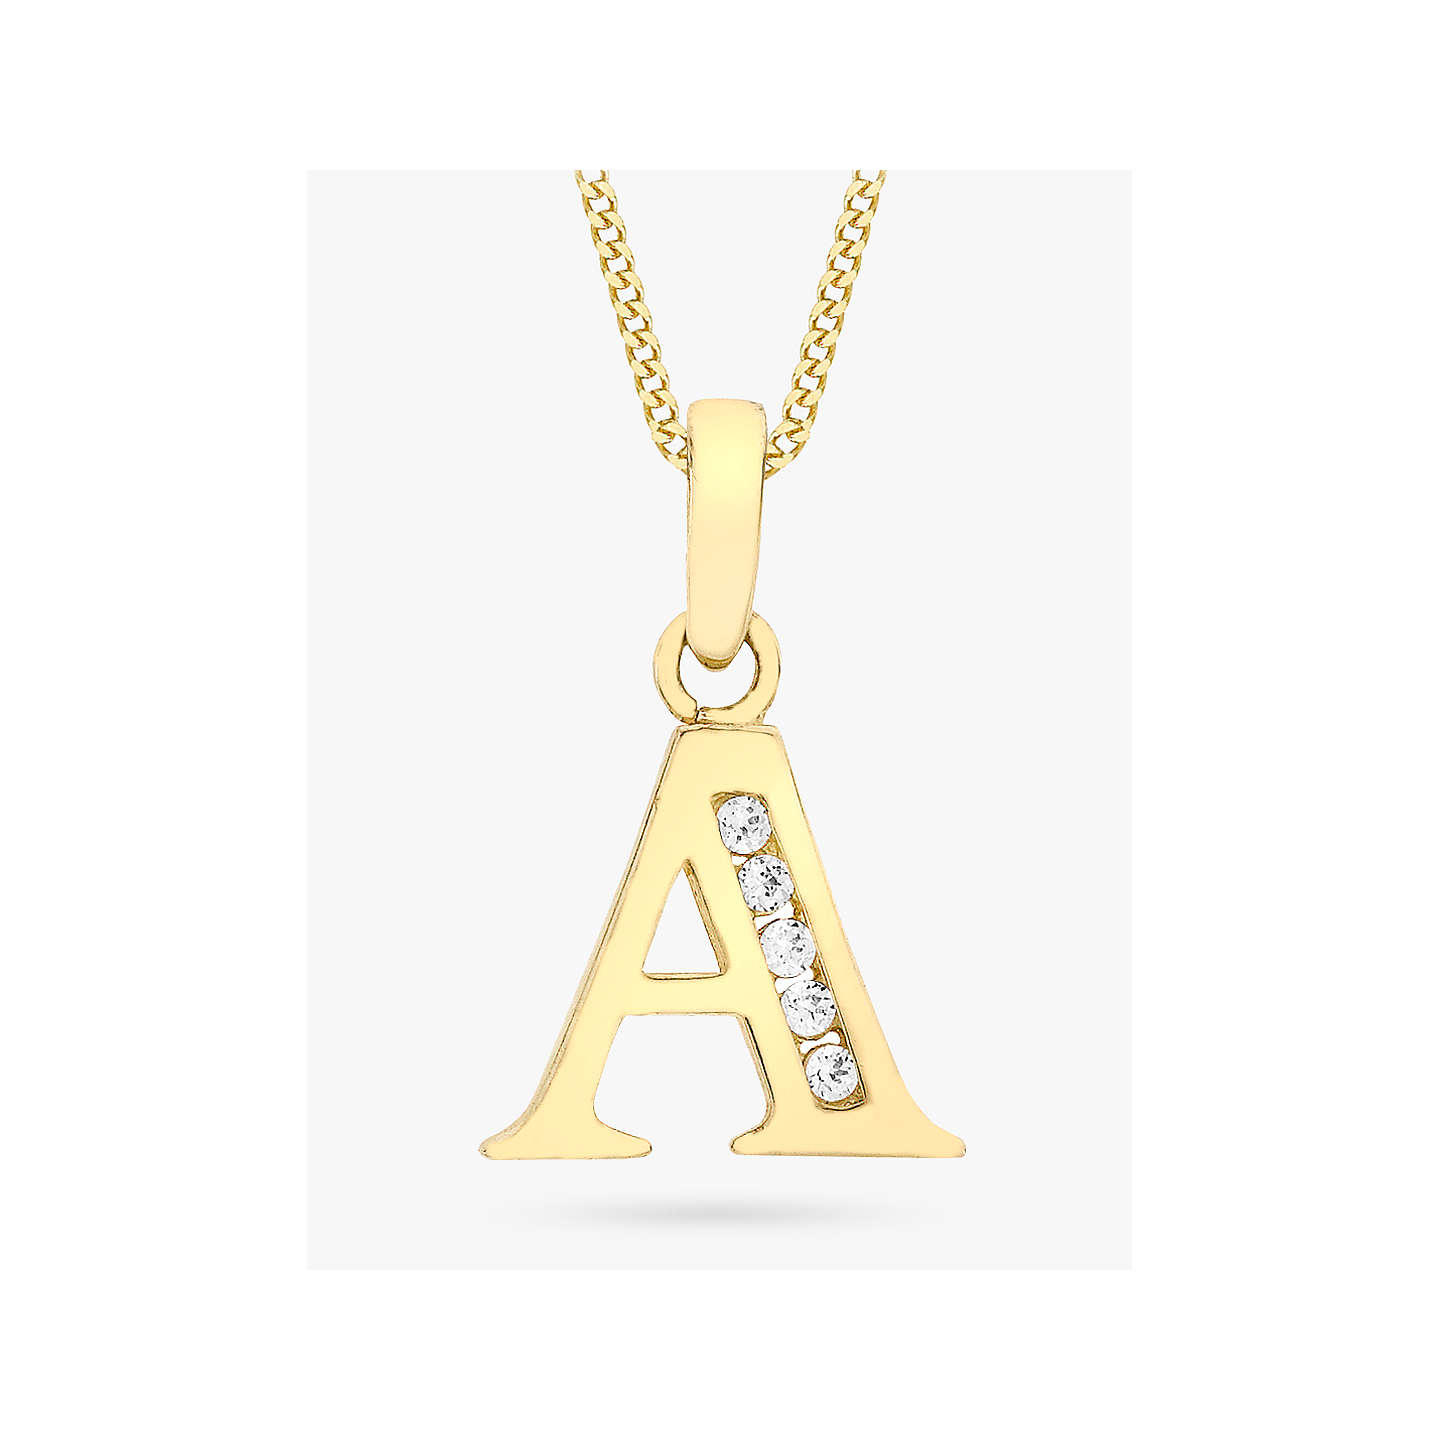 tif qlt white roberto pdpimgshortdescription shop layer diamonds coin wid with comp gold product letter resmode initial love usm op pendant sharpen necklace fpx